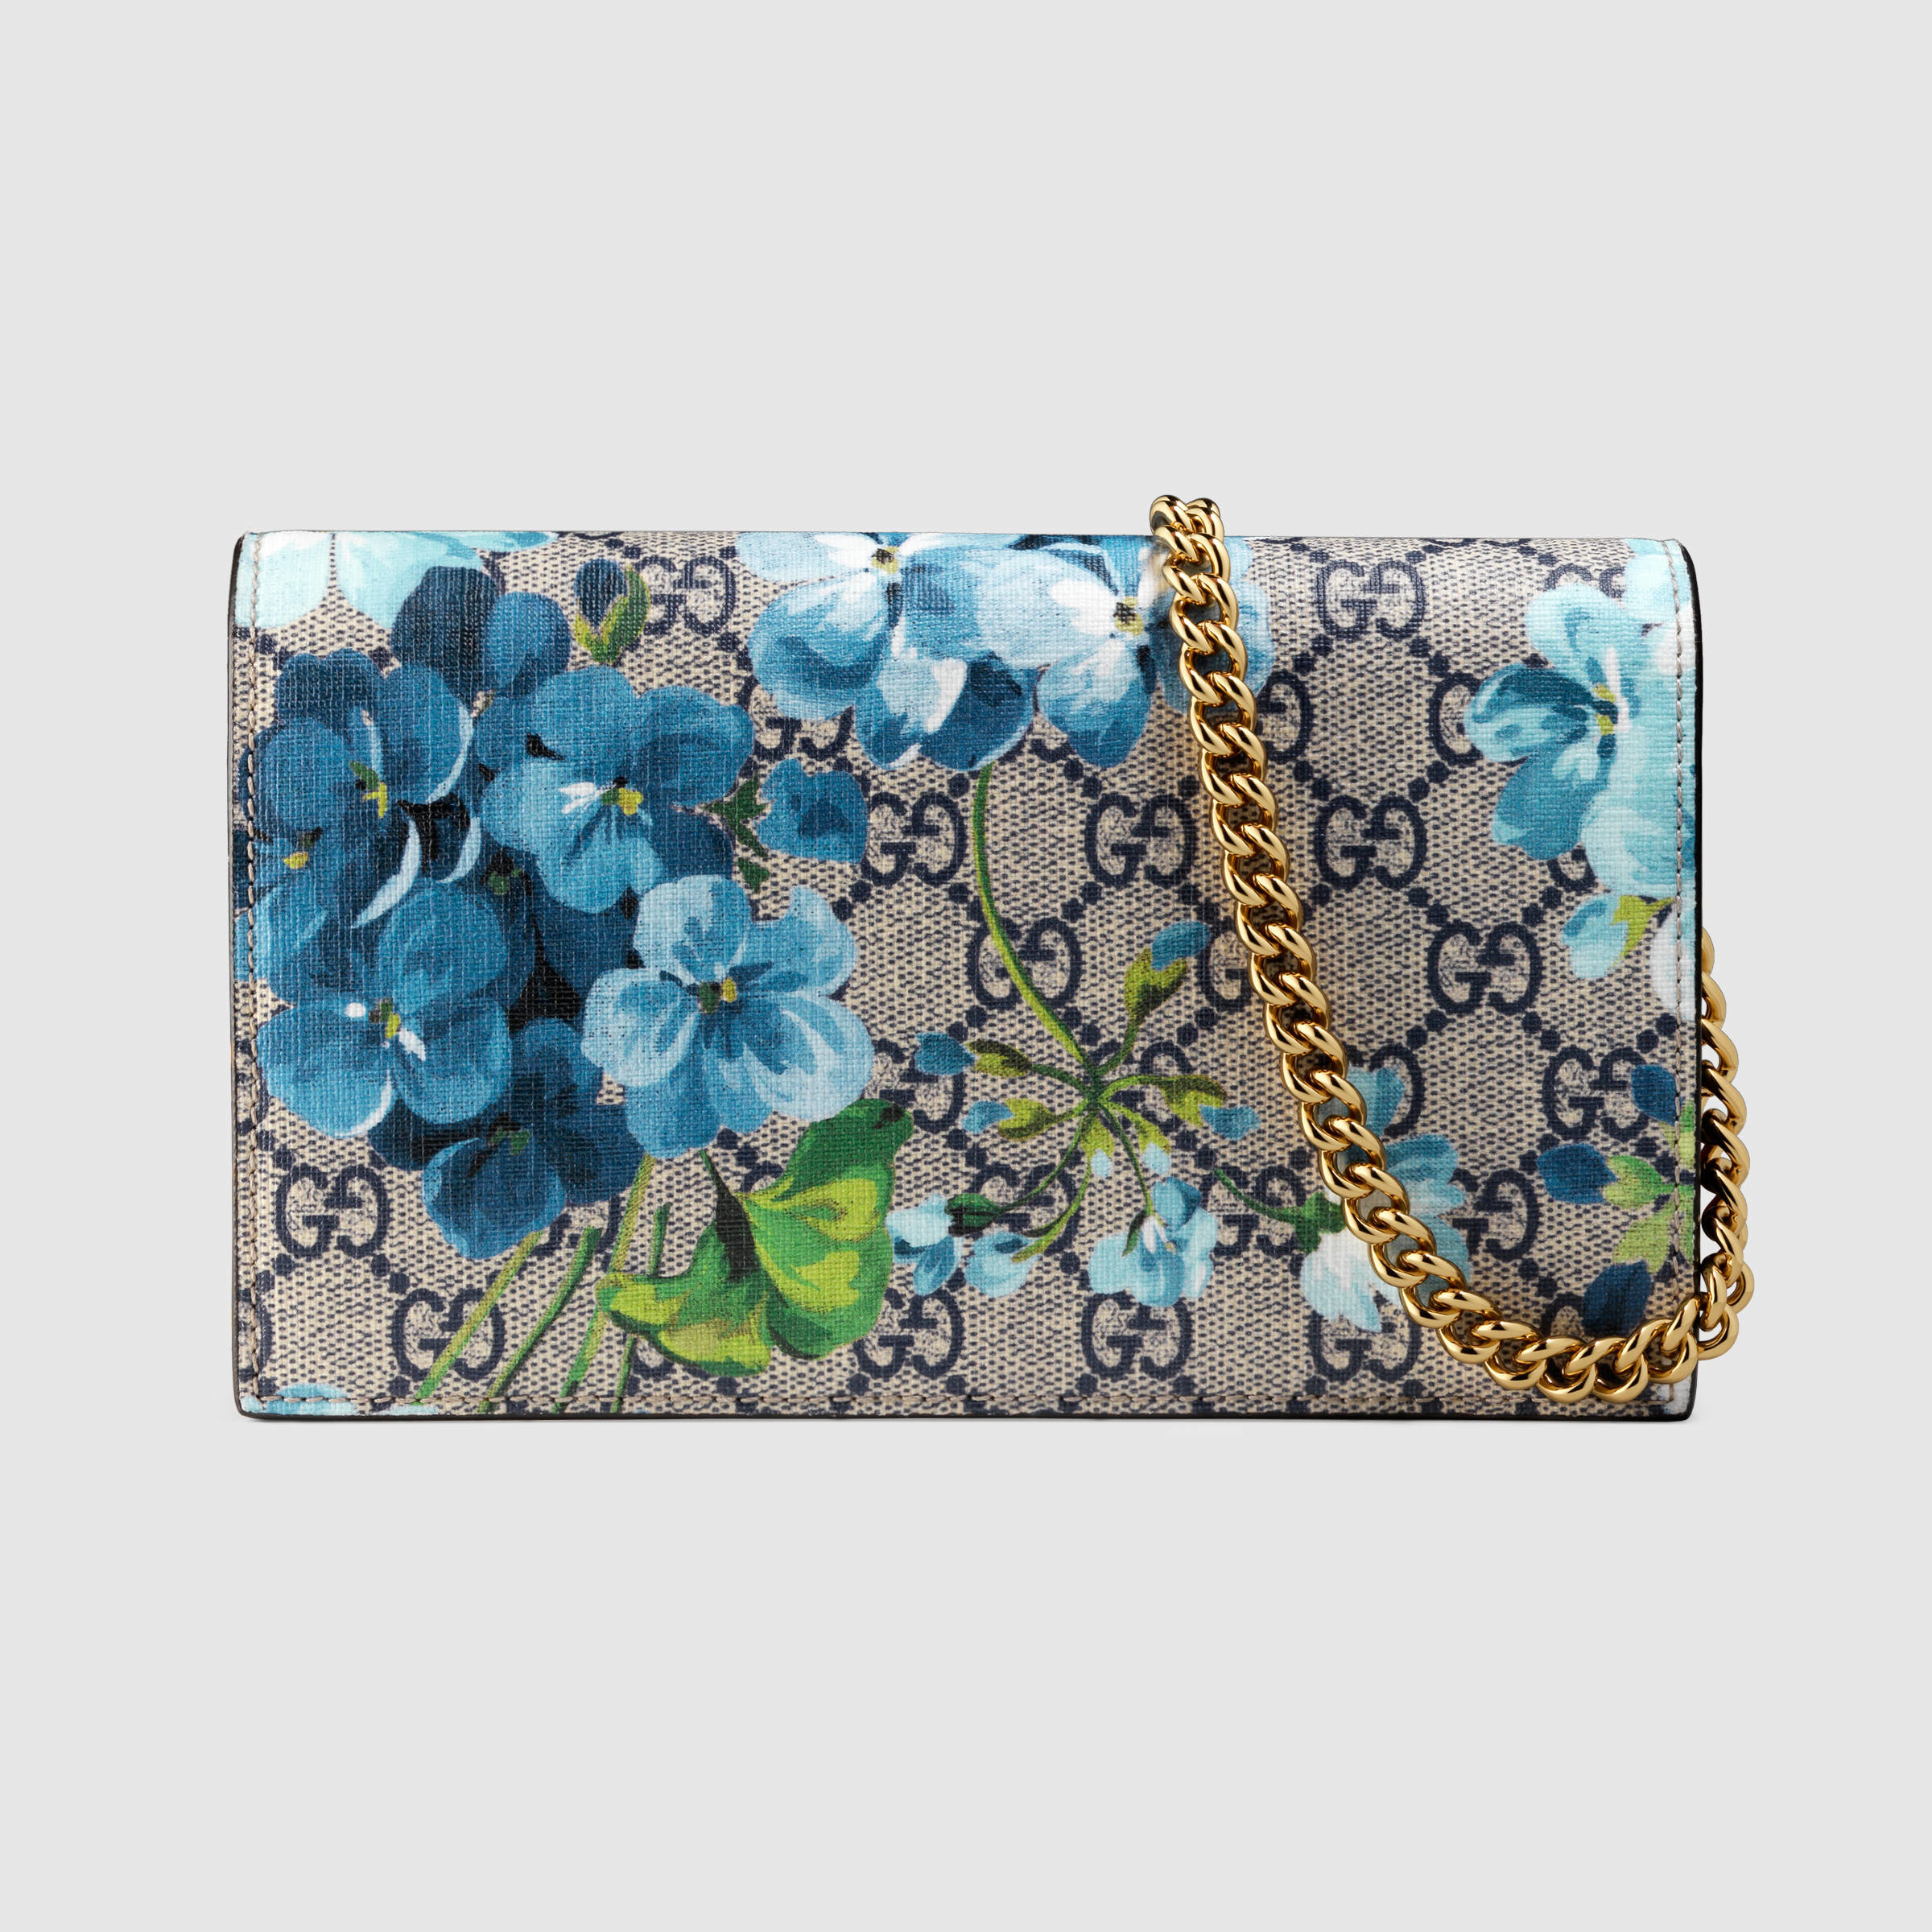 Lyst - Gucci Gg Blooms Supreme Chain Wallet